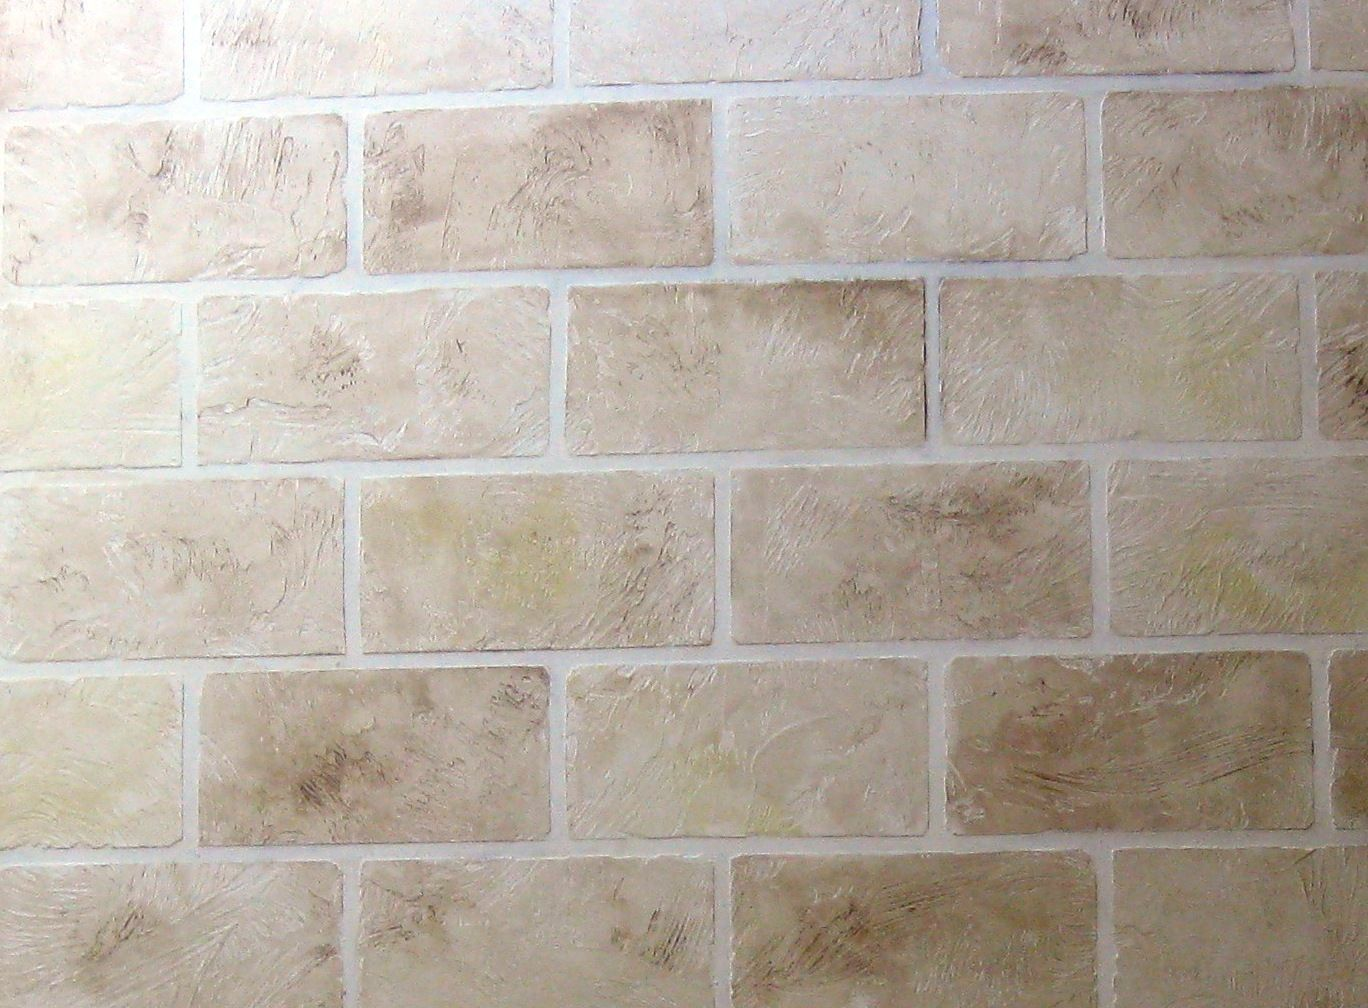 Concrete Wall Treatment Pictures Of Faux Painted Cement Block Faux Concrete